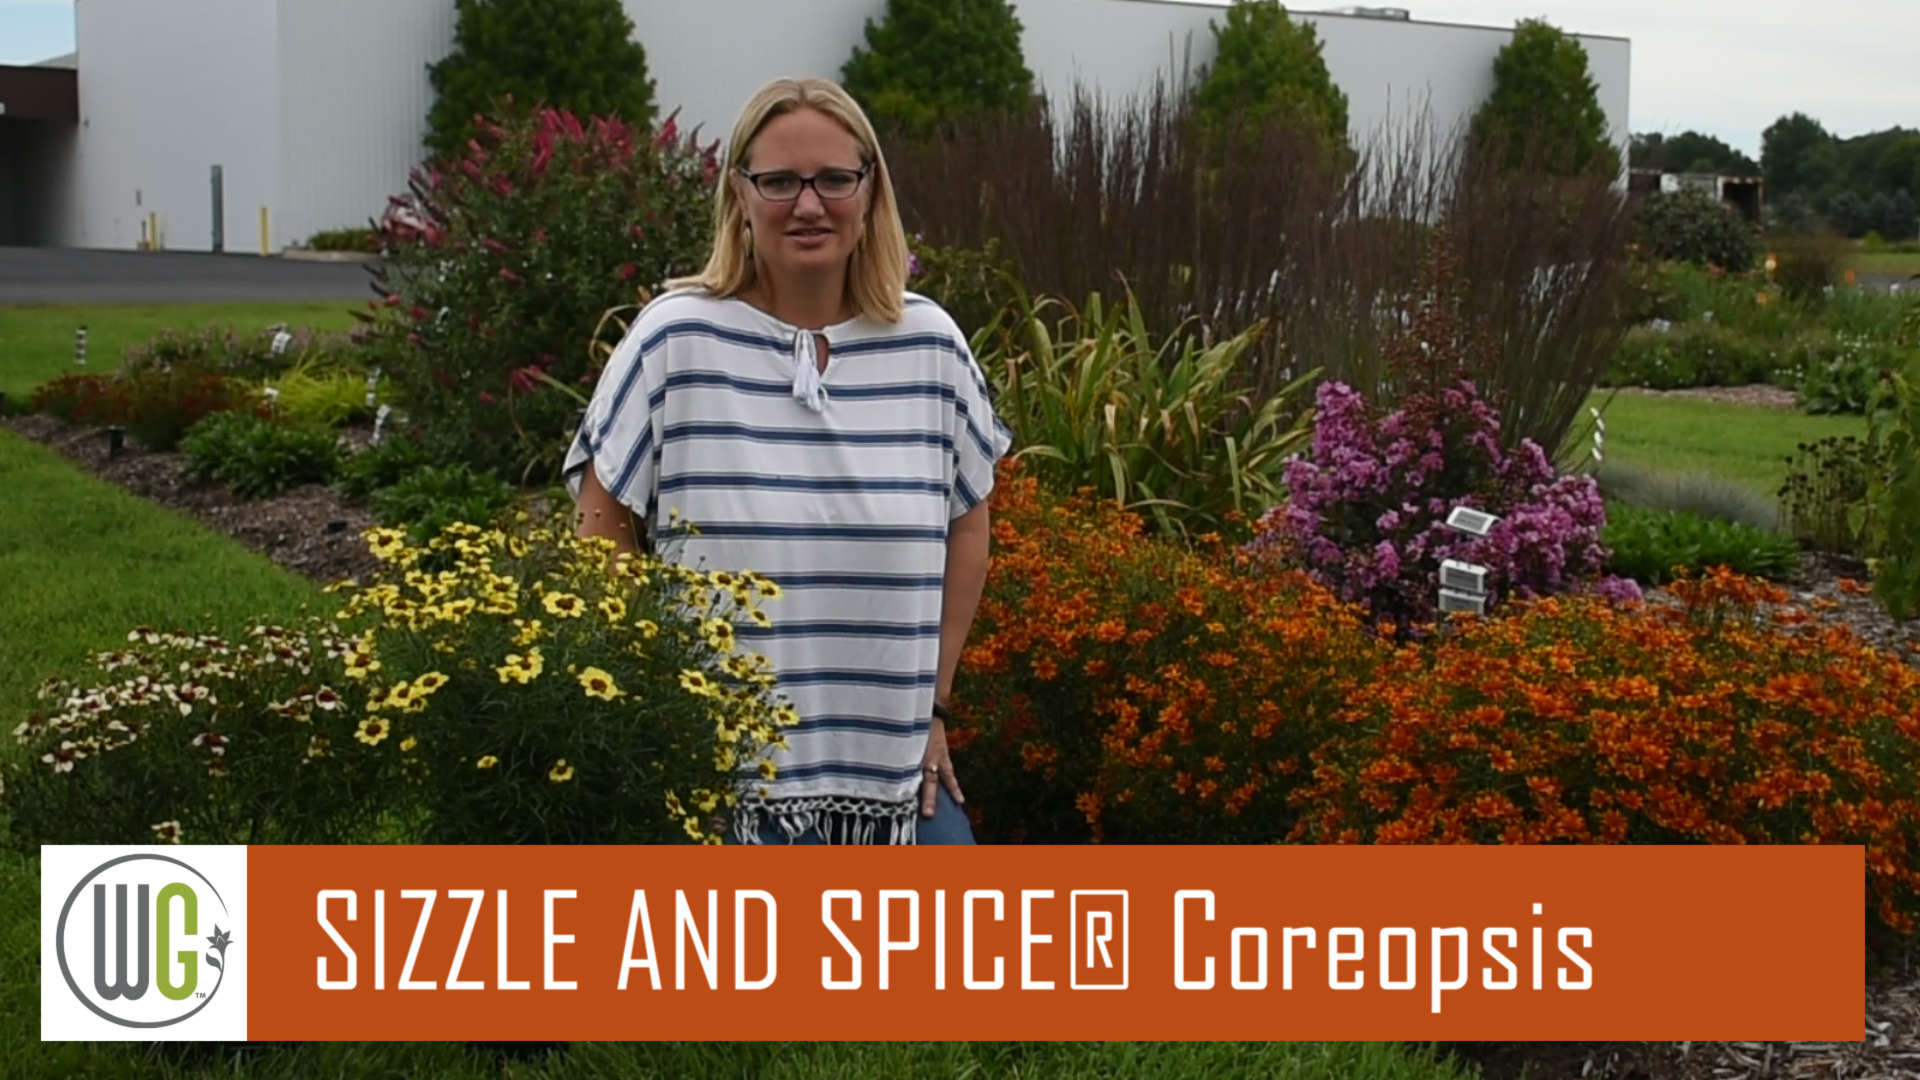 All About the Coreopsis Sizzle & Spice® Series